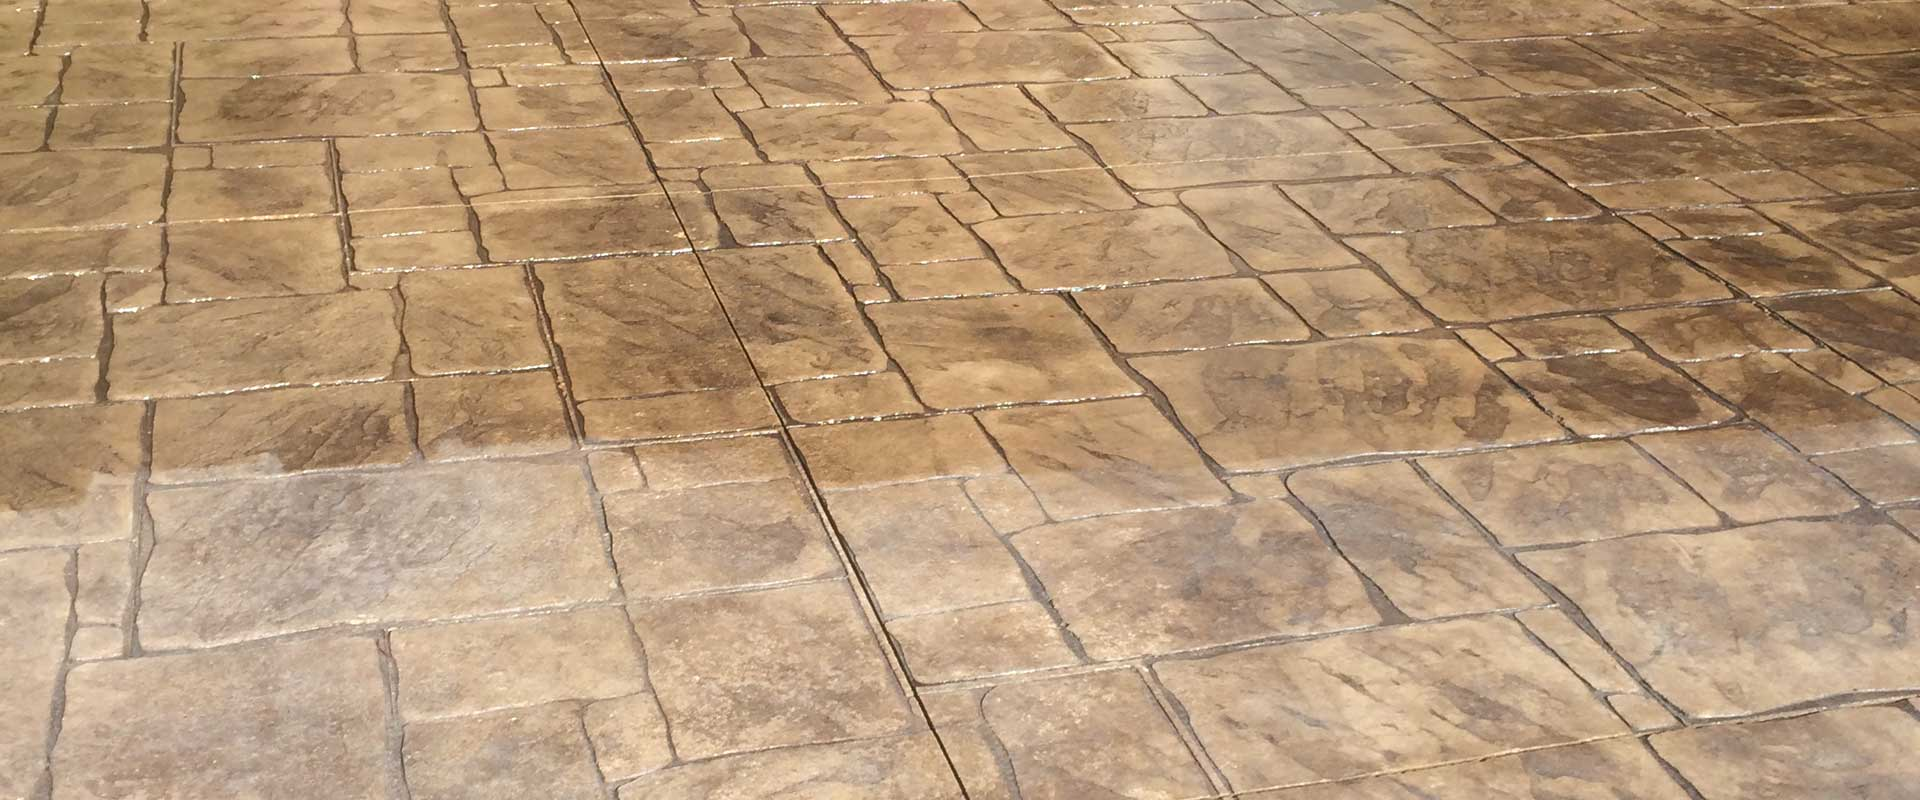 sealed stamped concrete patio